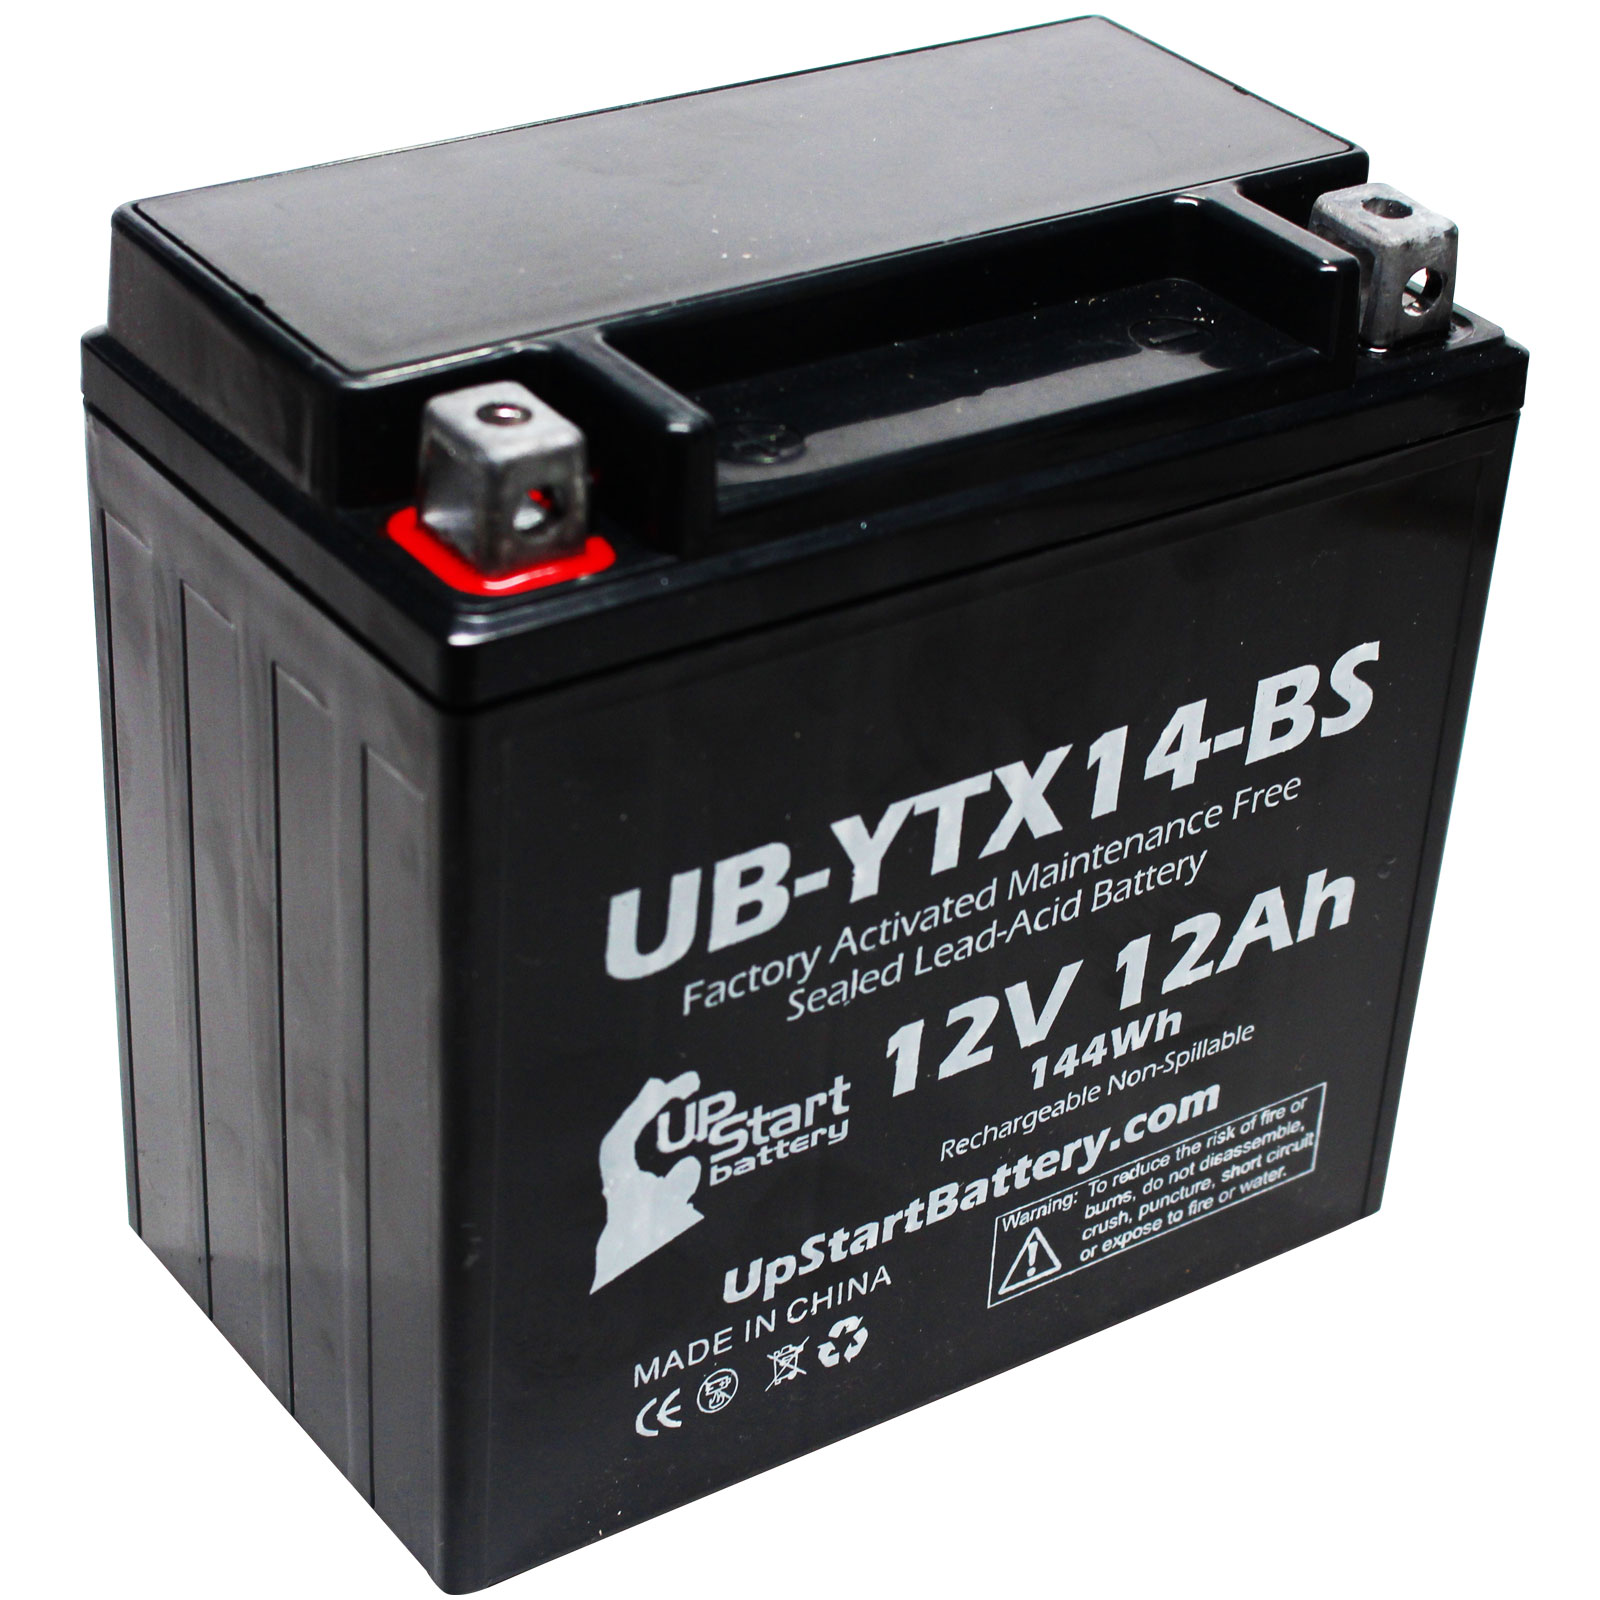 Replacement 2012 Kawasaki ZG1400 Concours 1400 CC Factory Activated, Maintenance Free, Motorcycle Battery - 12V, 12AH, UB-YTX14-BS